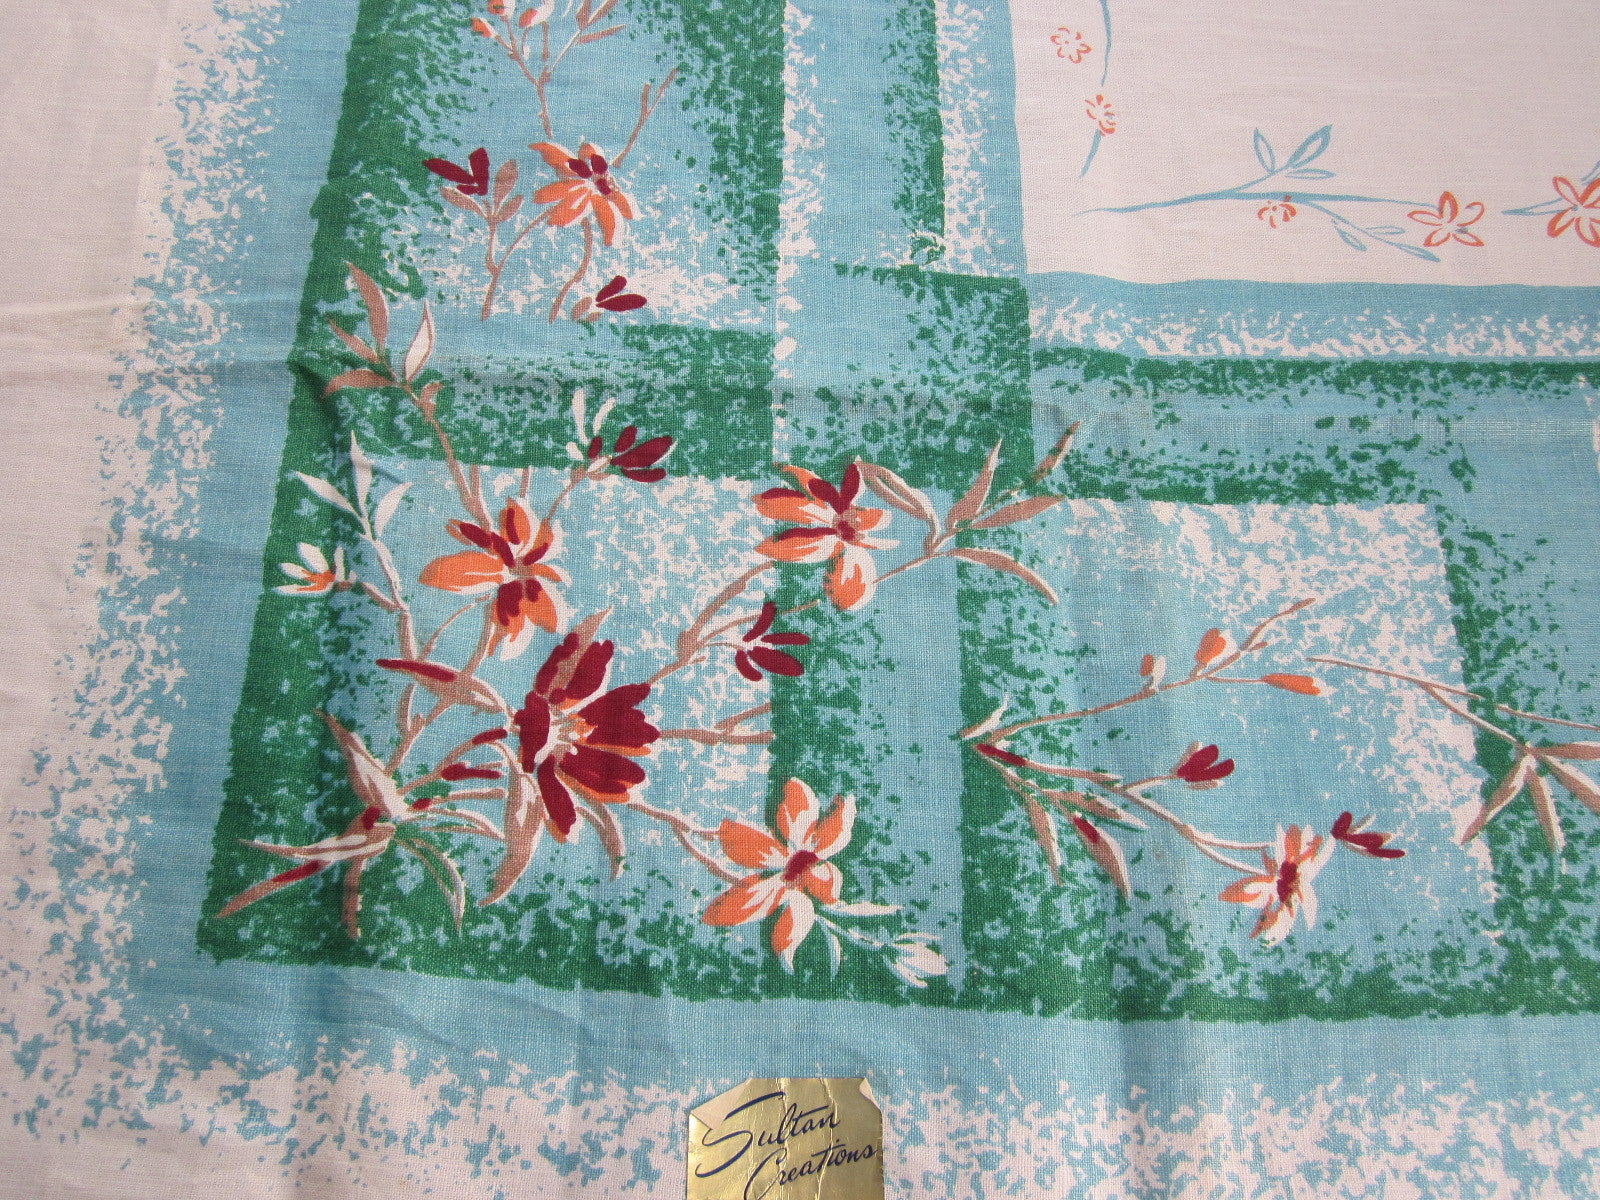 Melon Daisies on Aqua Green Linen Floral MWT Vintage Printed Tablecloth (53 X 51)